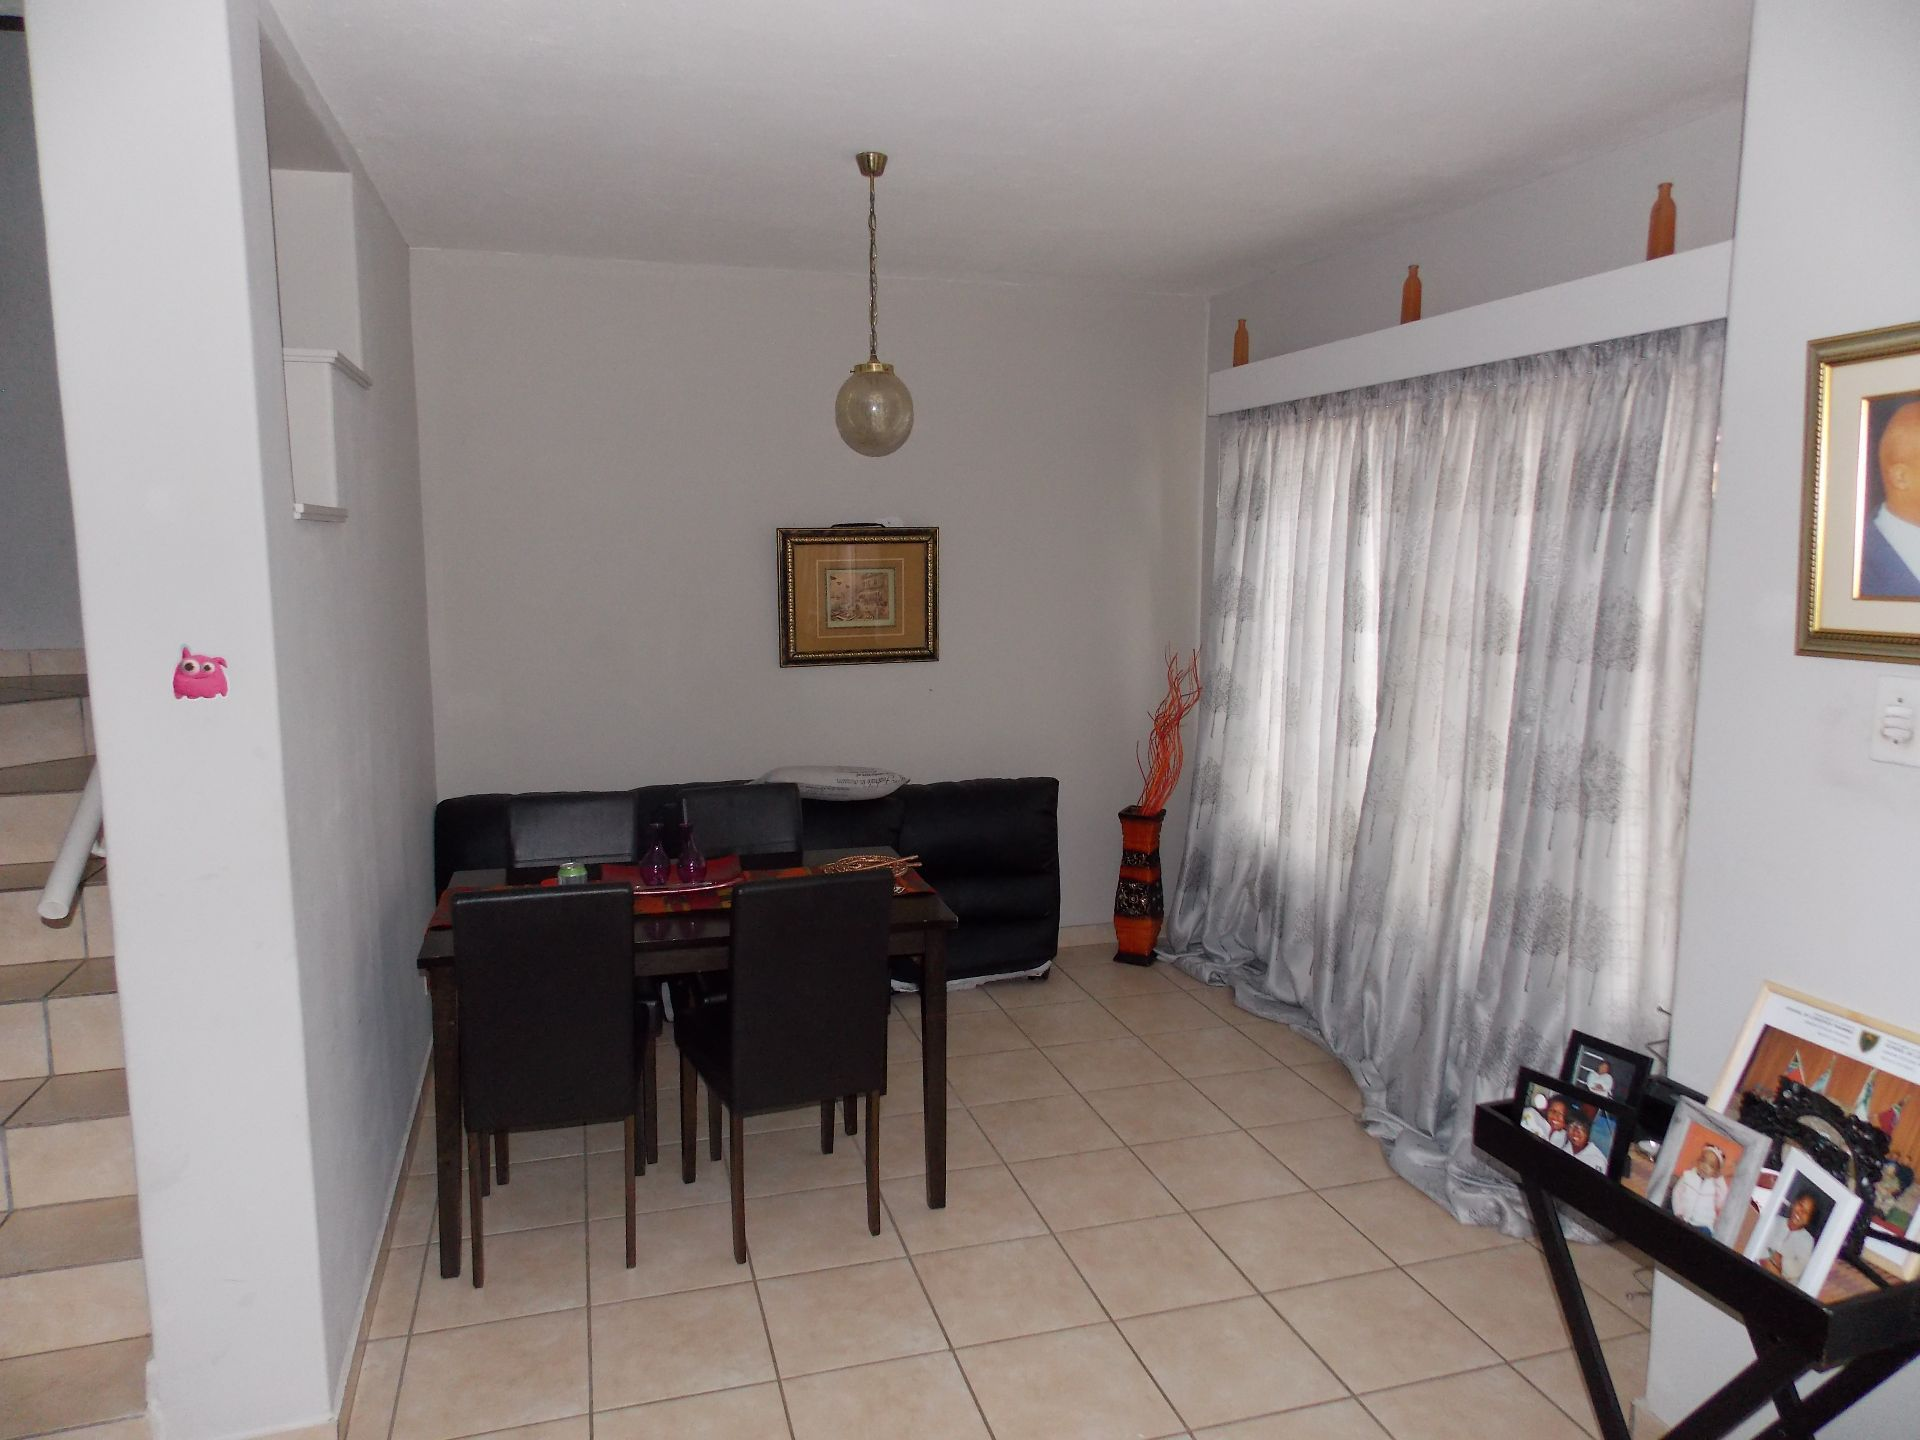 Potchefstroom Central property for sale. Ref No: 13449640. Picture no 6